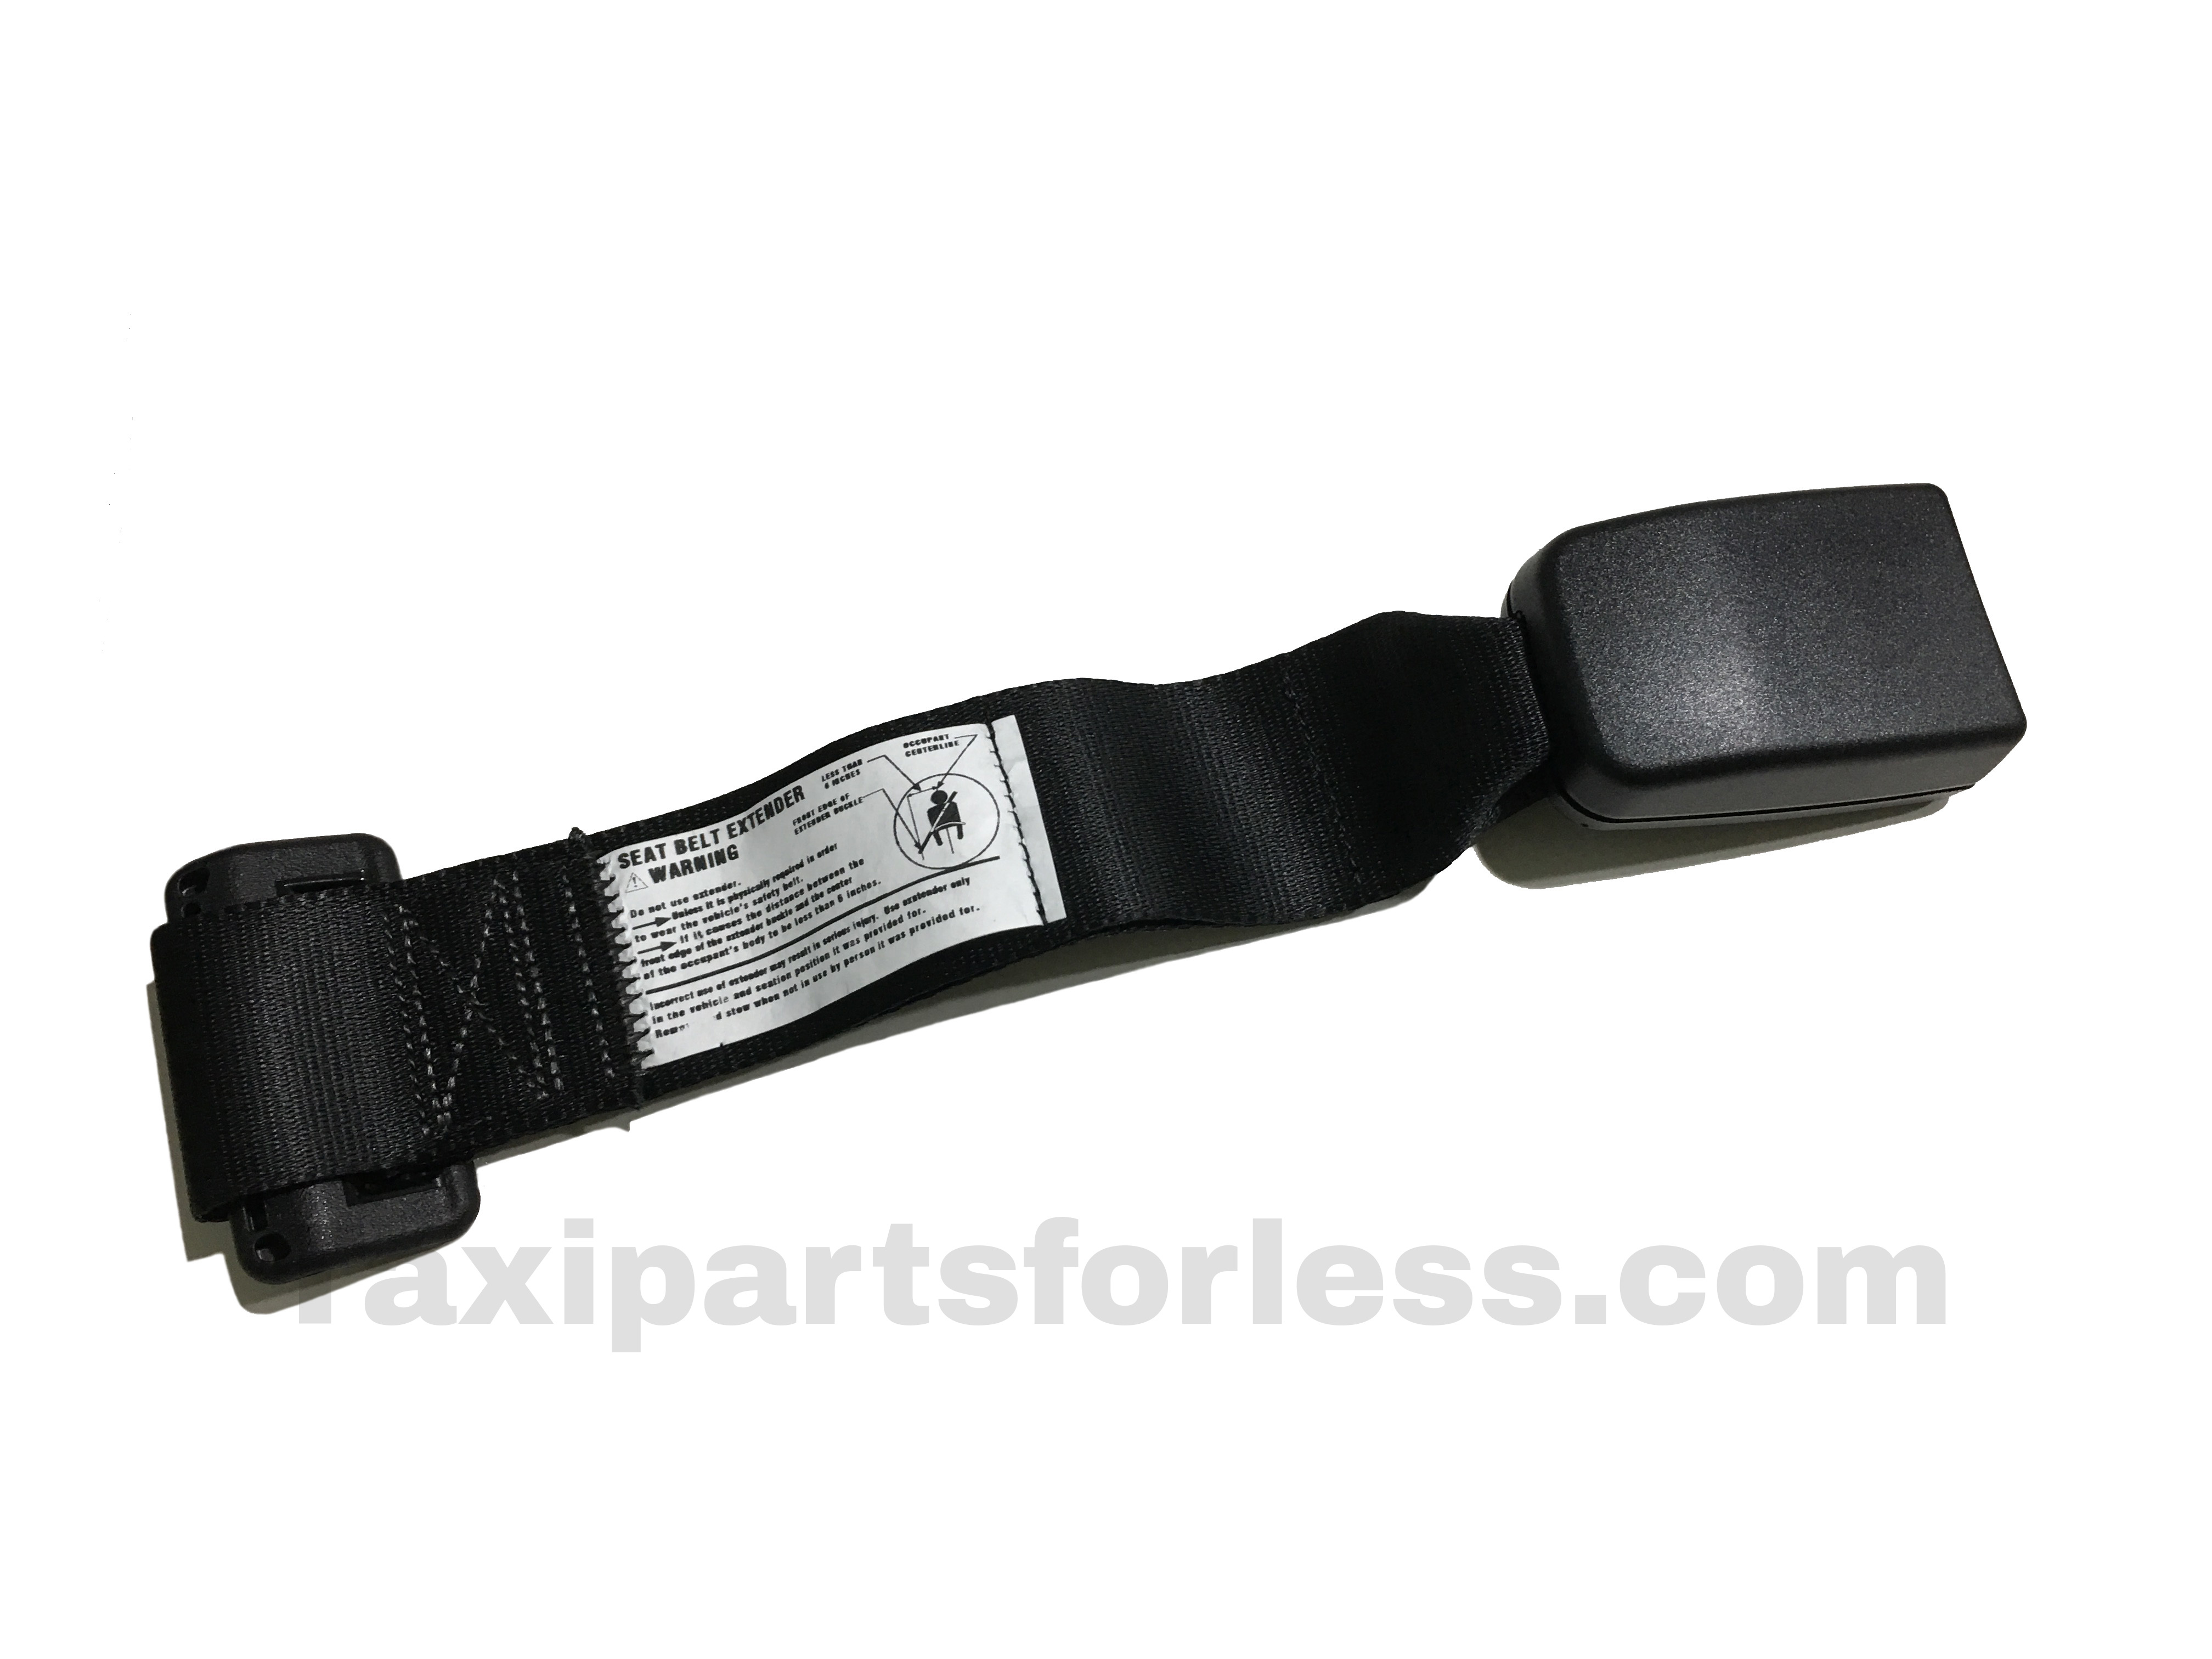 Seat belt extender brand new ford oem fits 12 14 ford e150